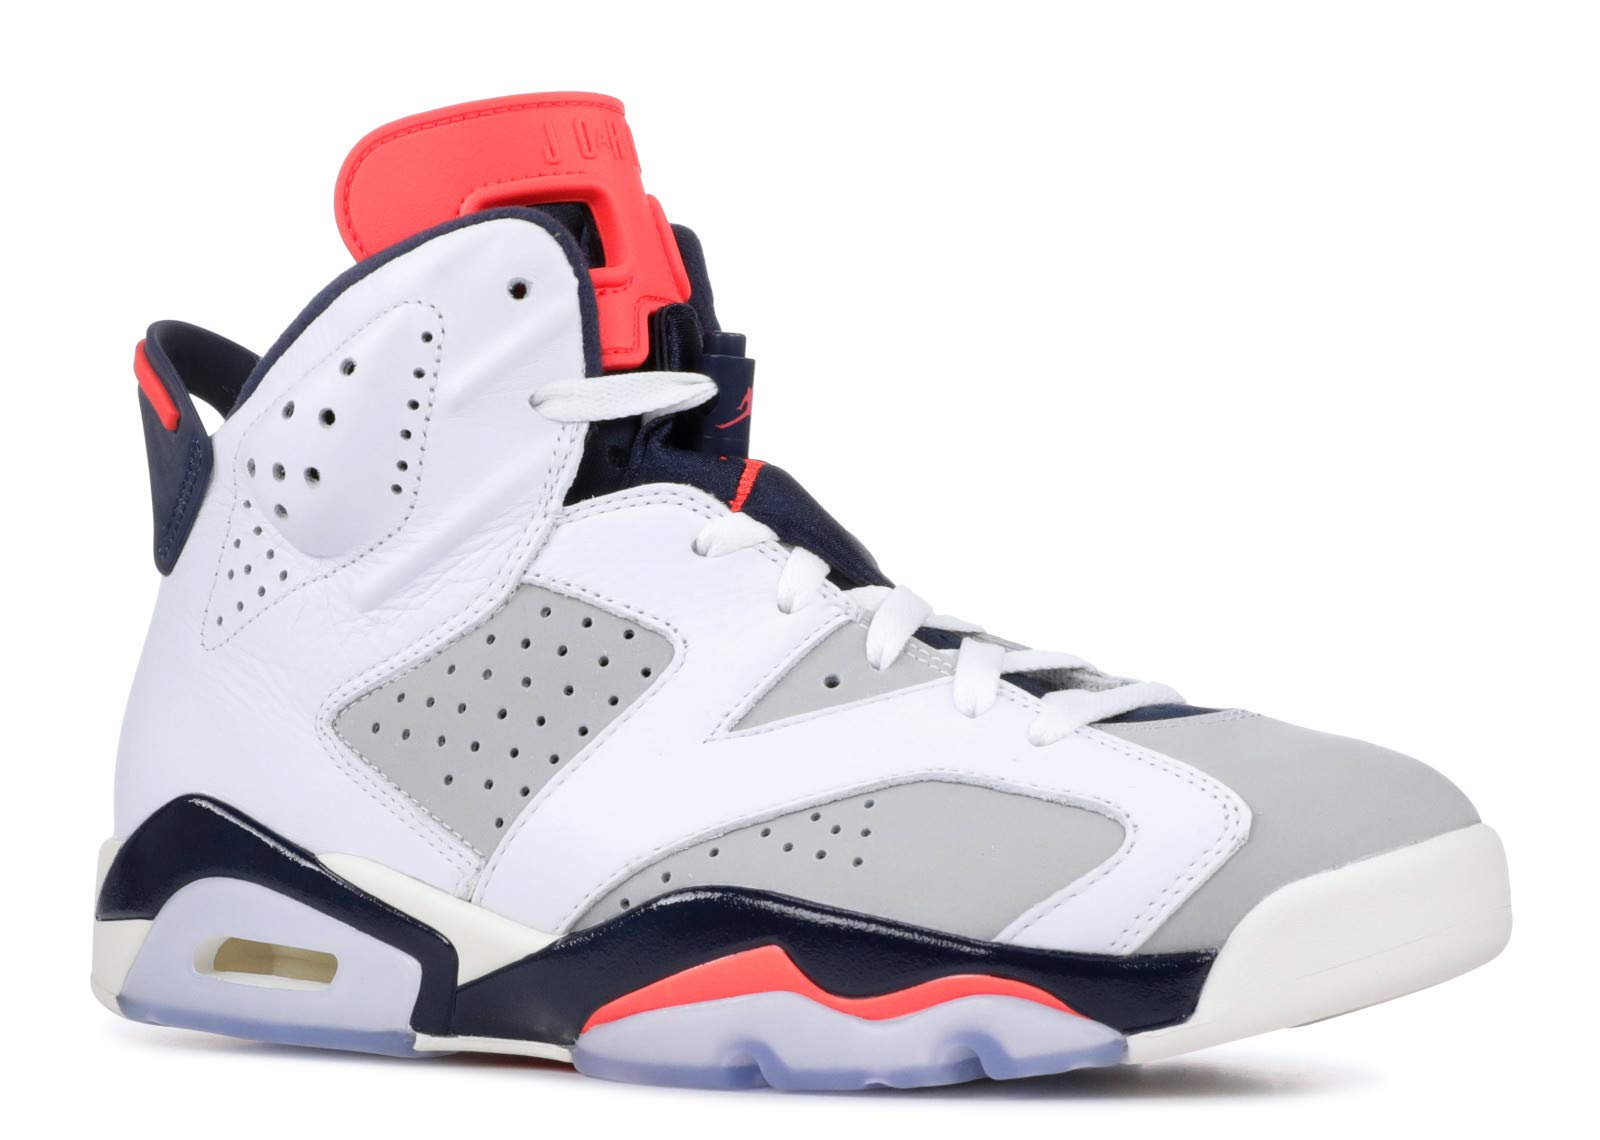 separation shoes c0905 c9d66 Galleon - NIKE Jordan Retro 6 - Men s (13, White Infrared 23 Neutral  Grey White Sail)